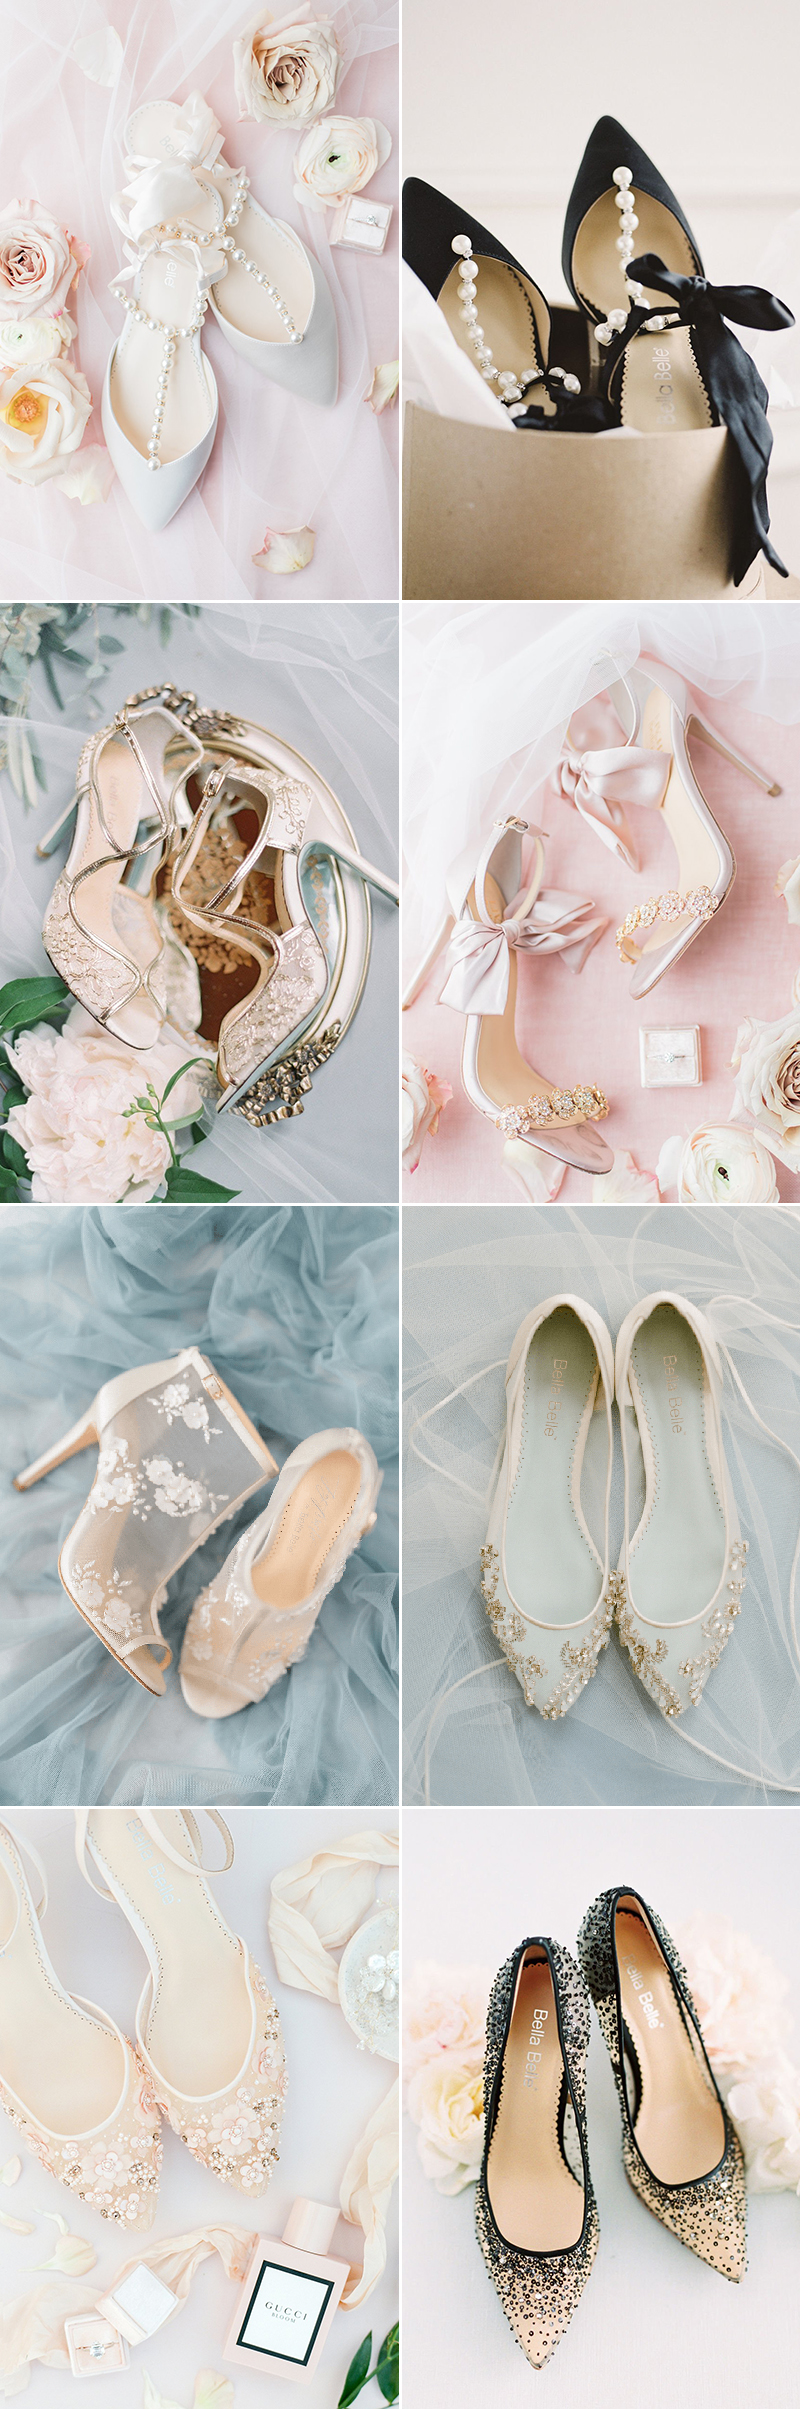 Praise wedding and family online shop - wedding shoes